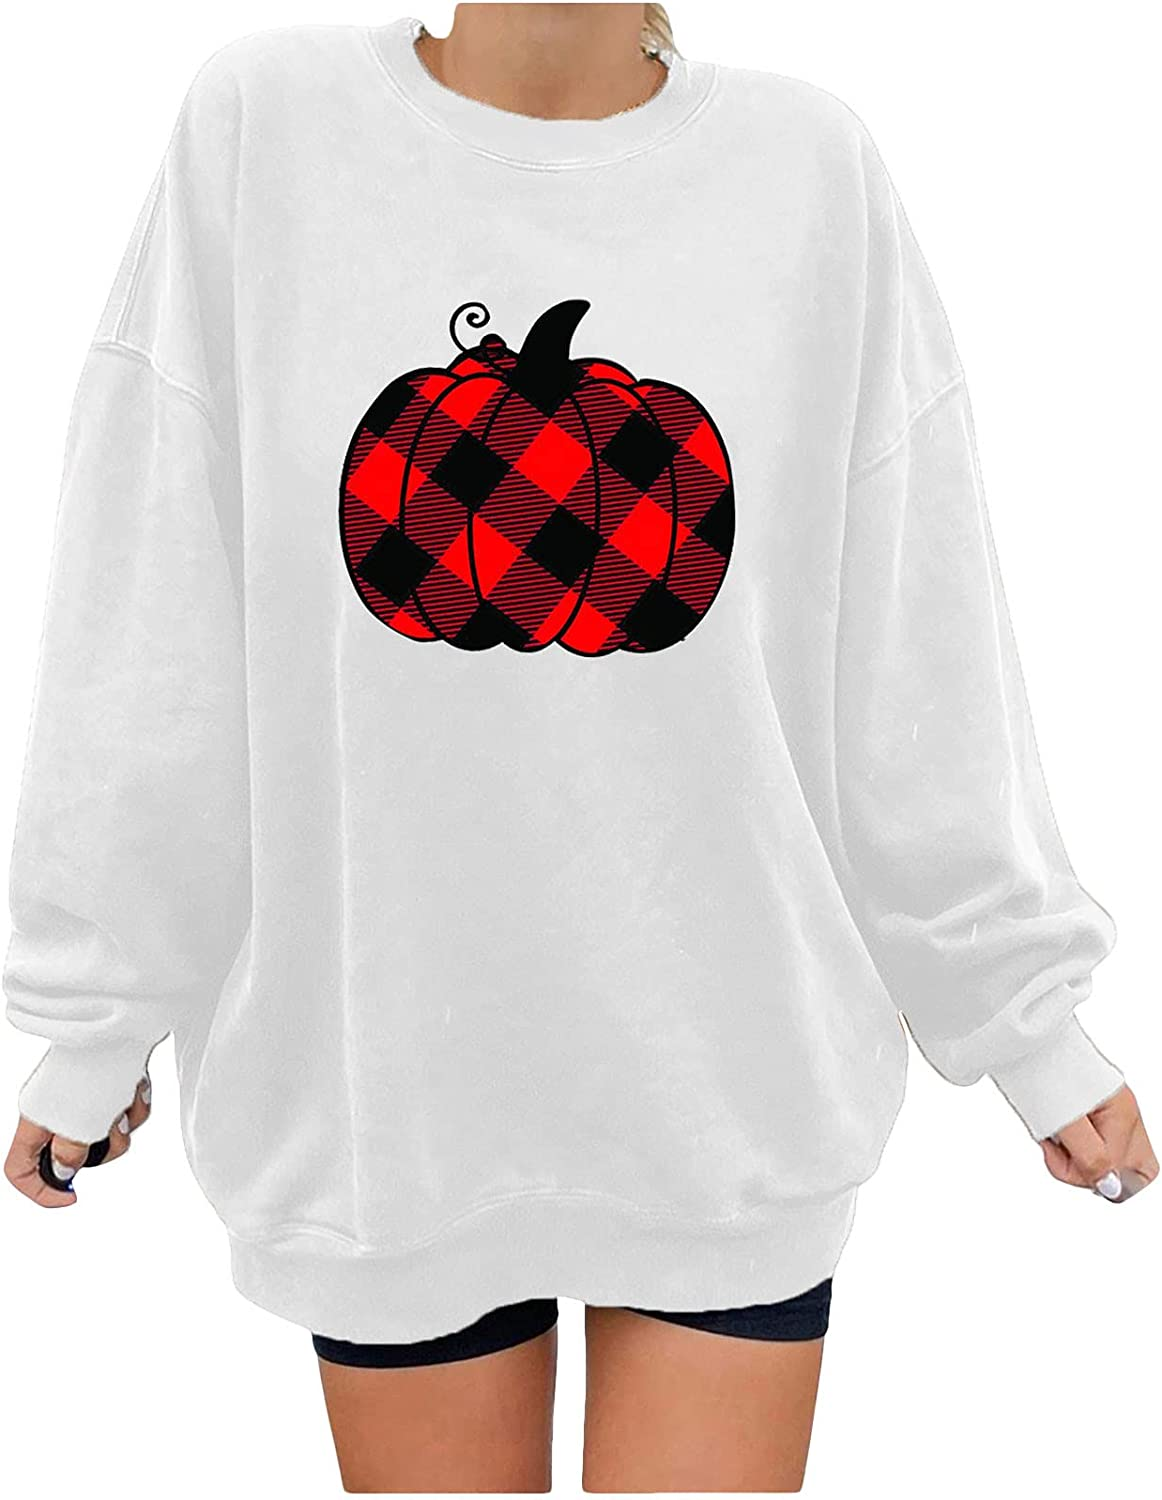 Sweatshirt for Womens Trendy Full Sleeve Solid Color Top Halloween Pumpkin Print Blouse Loose O Neck Pullover